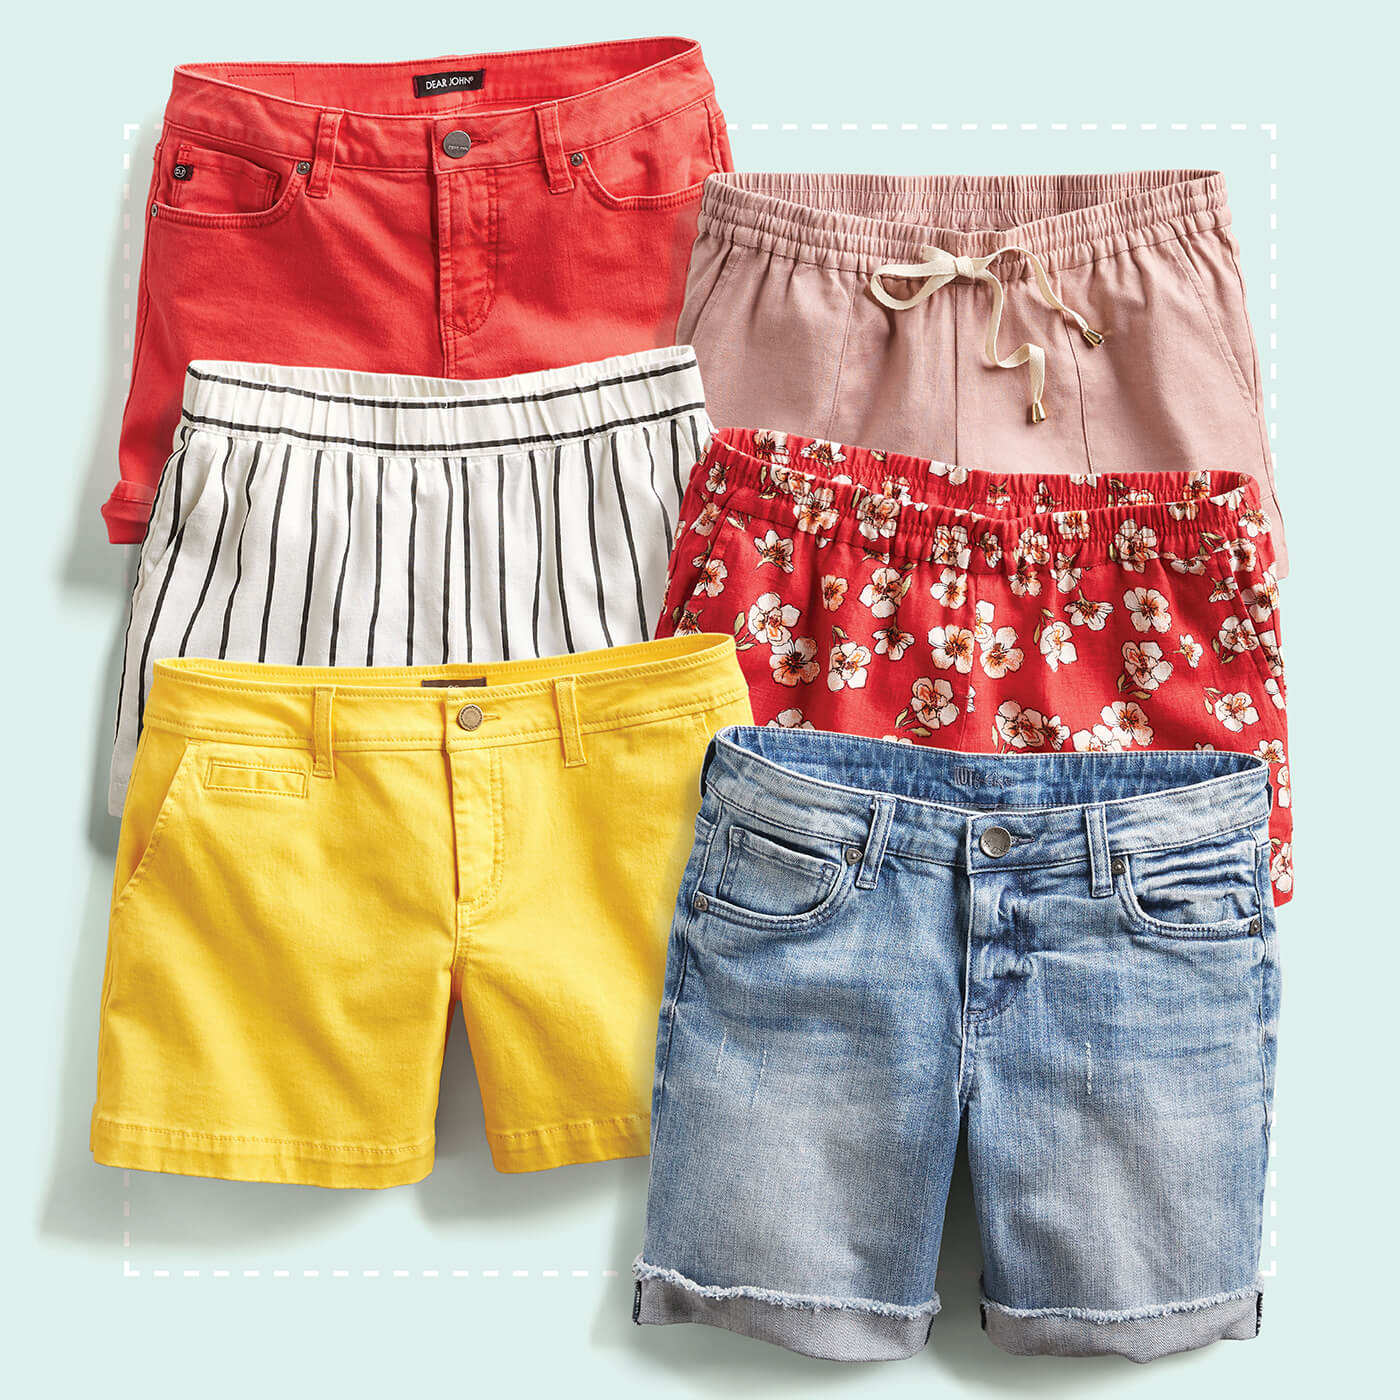 f87a5dad8fb Shorts for Every Summer Mood